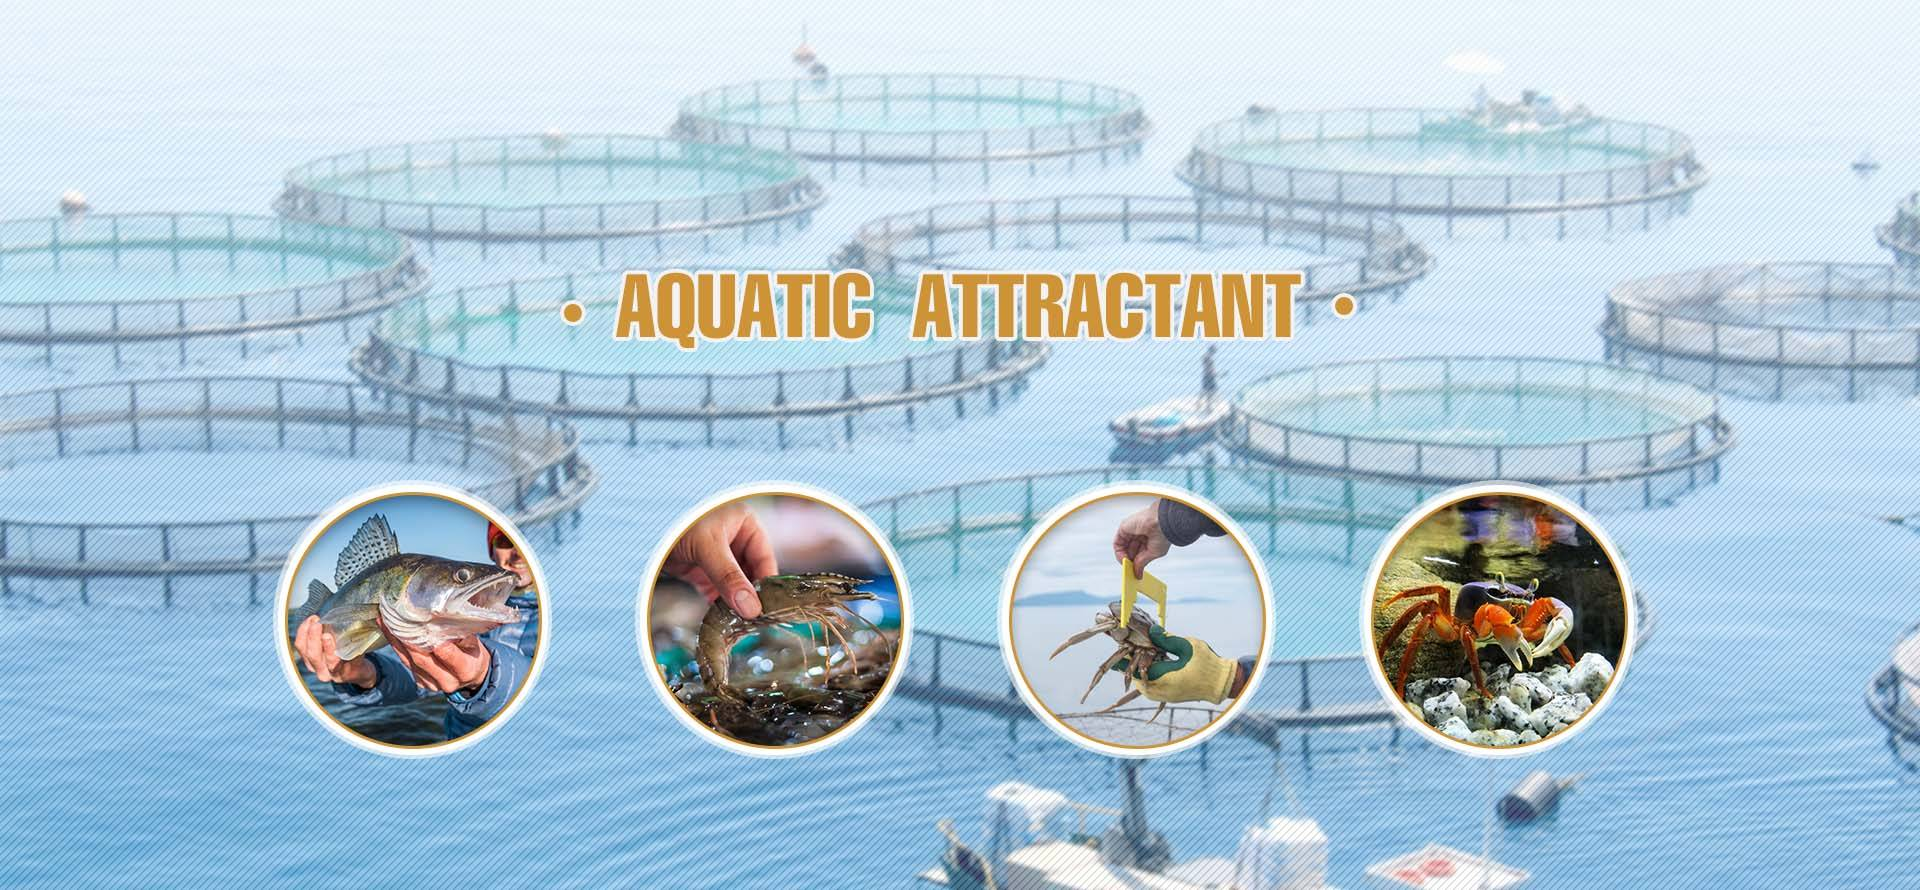 AQUATIC ATTRACTANT